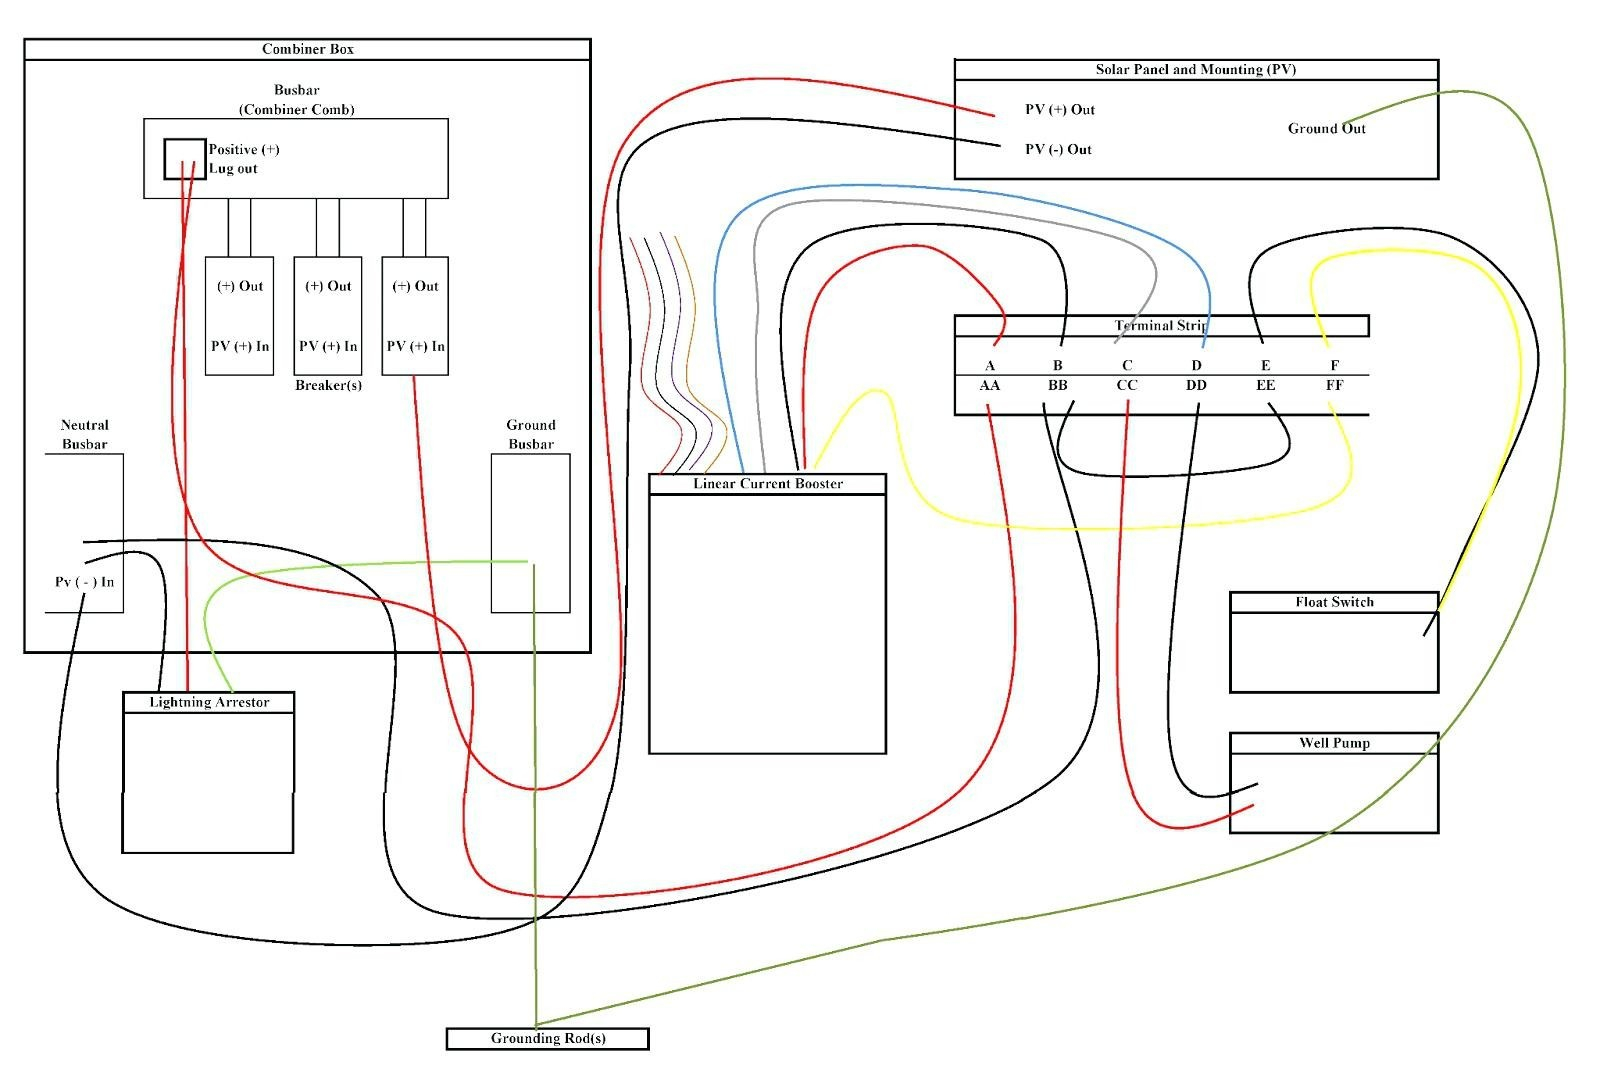 4 wire well pump wiring diagram Download-Full Size of 220v Pool Pump Wiring Diagram 4 Wire Well 220 Archived Wiring Diagram 2-f